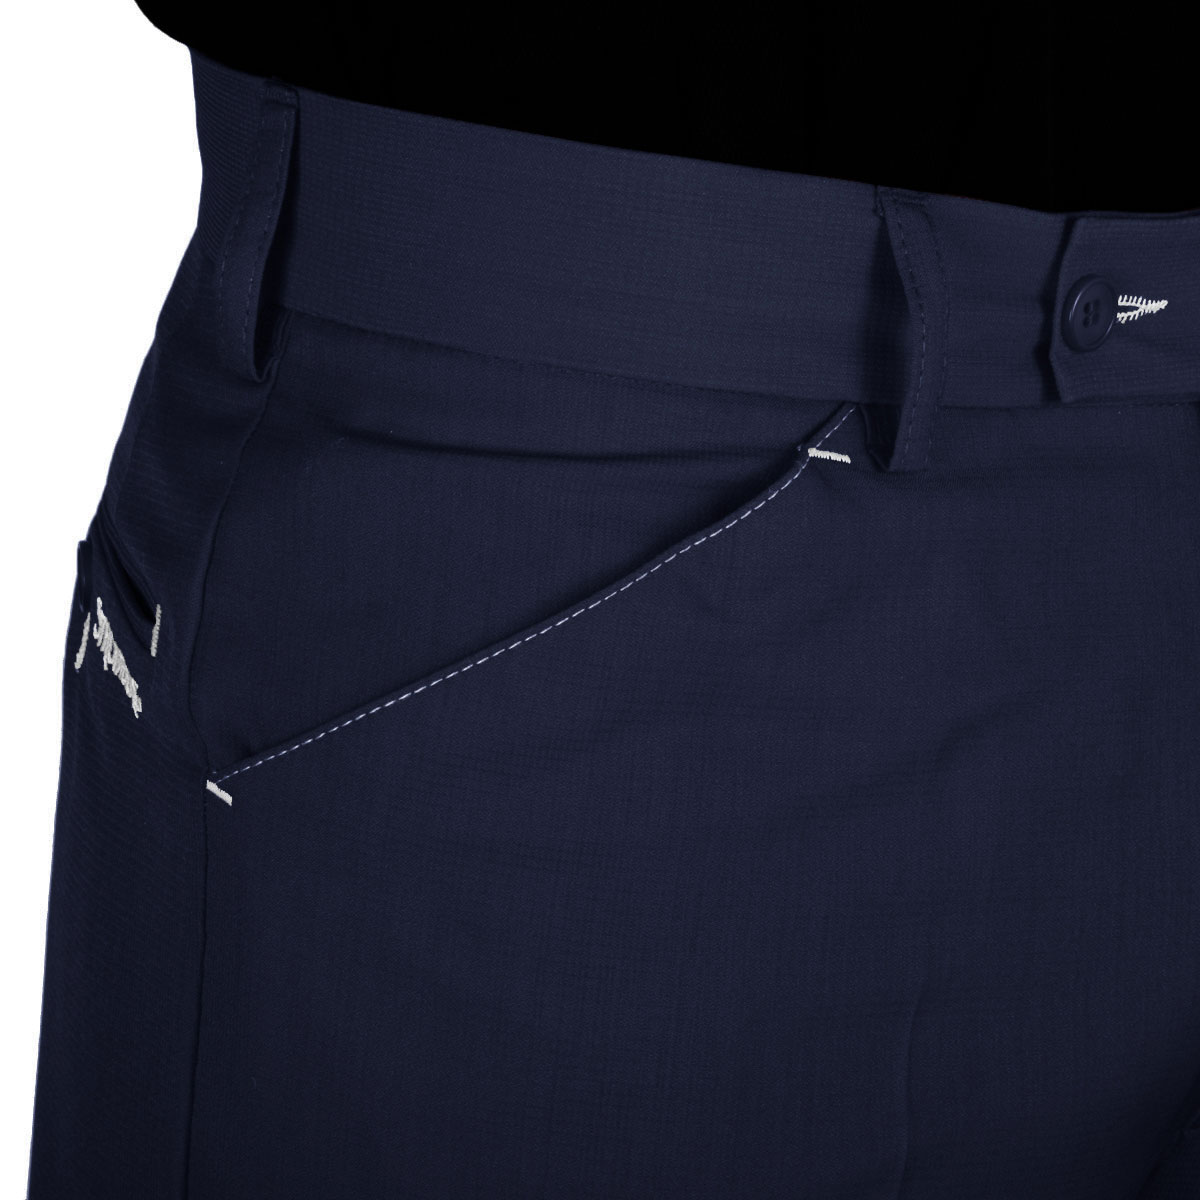 Stromberg-Mens-Sintra-Slim-Fit-Technical-Funky-Golf-Trousers-40-OFF-RRP thumbnail 20